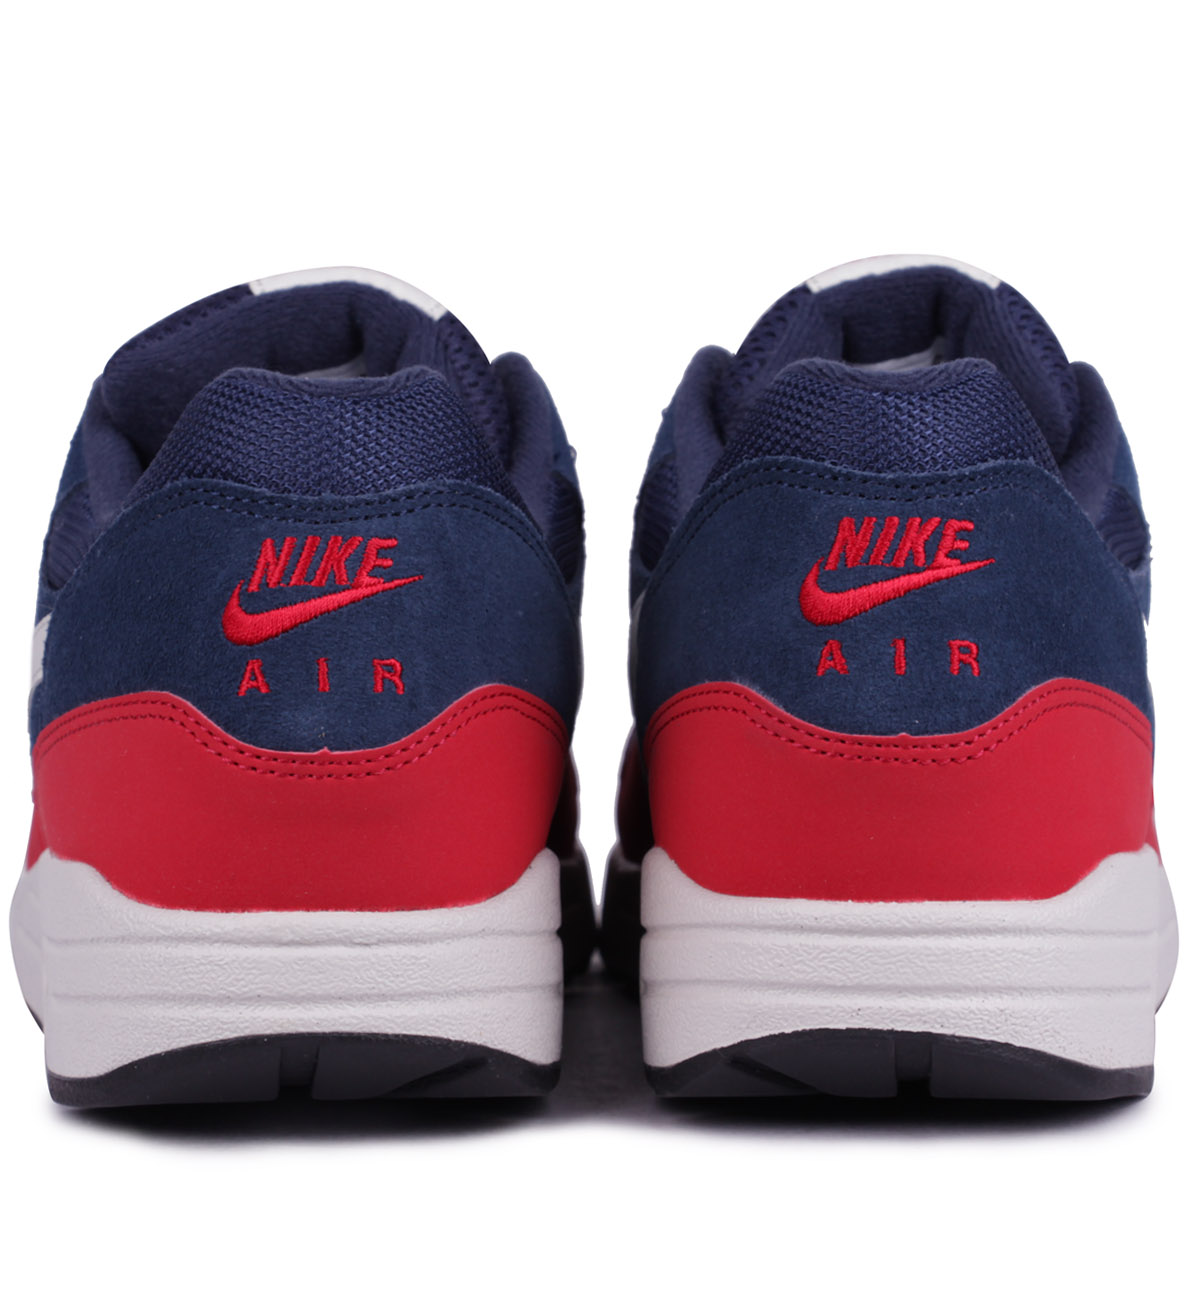 Nike Air Max 1 Essential GBR Where To Buy 537383 400